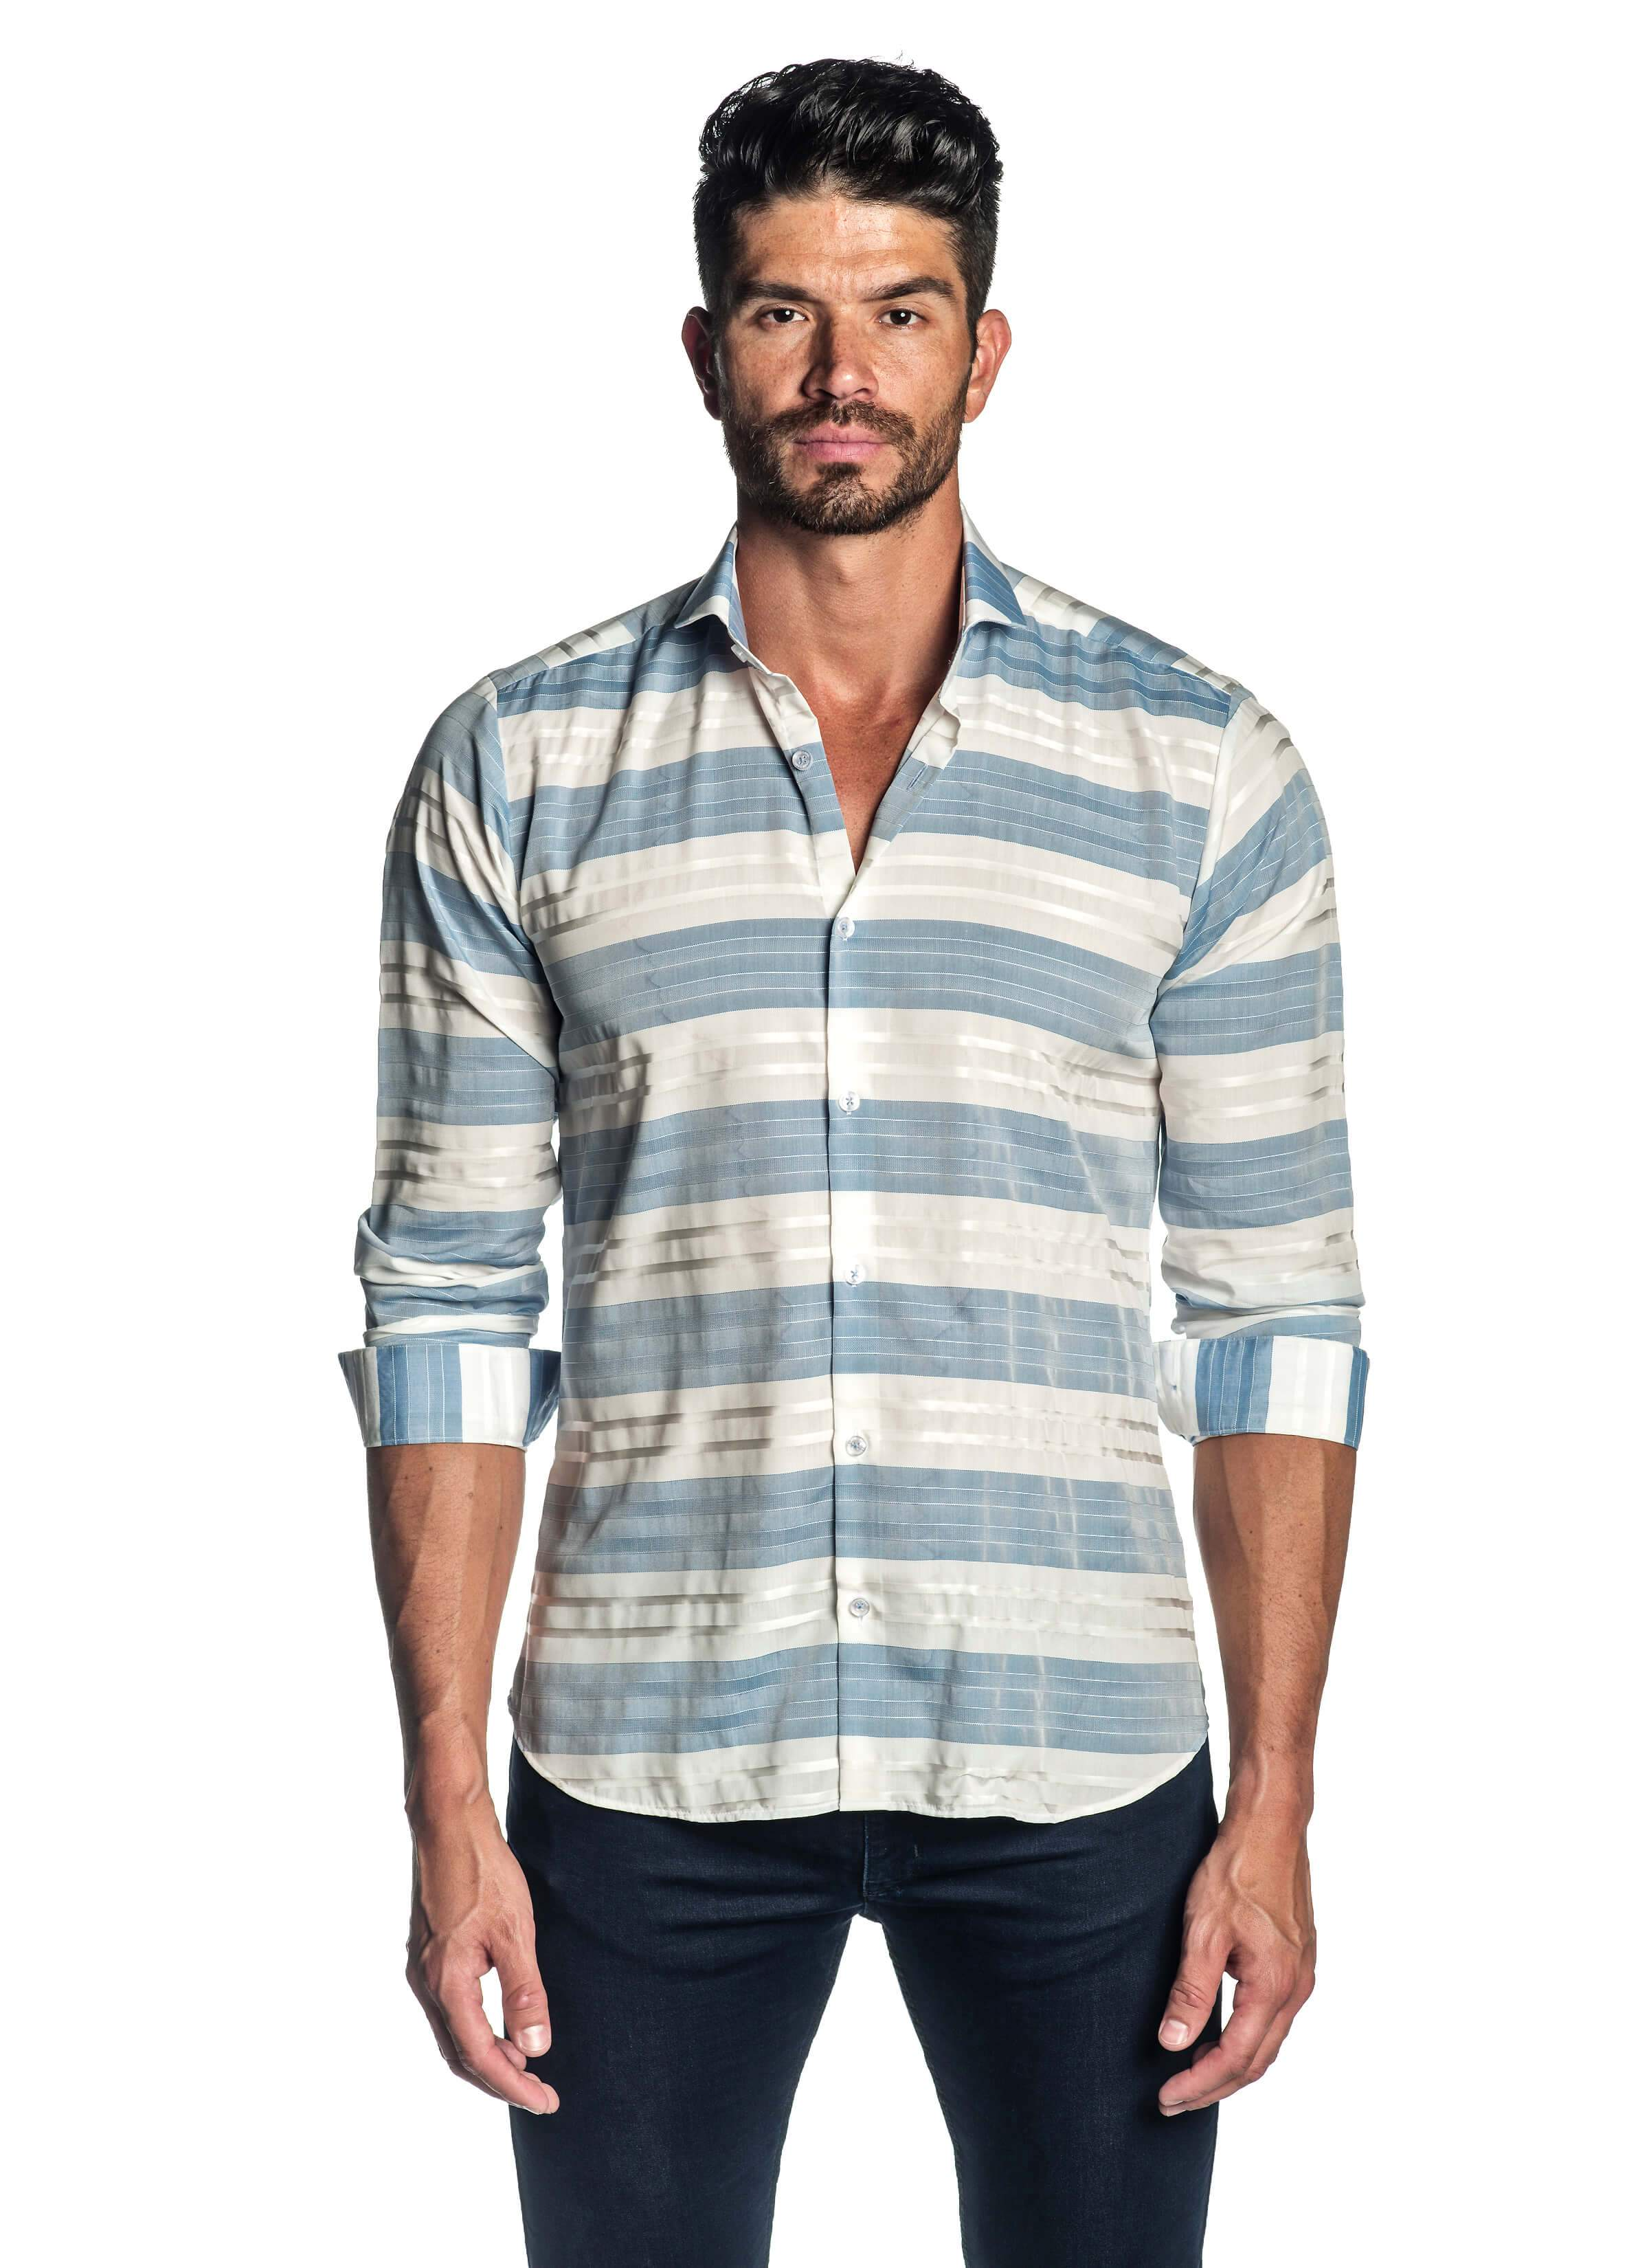 White and Blue Stripe Shirt for Men AH-ITA-T-9005 - Front - Jared Lang